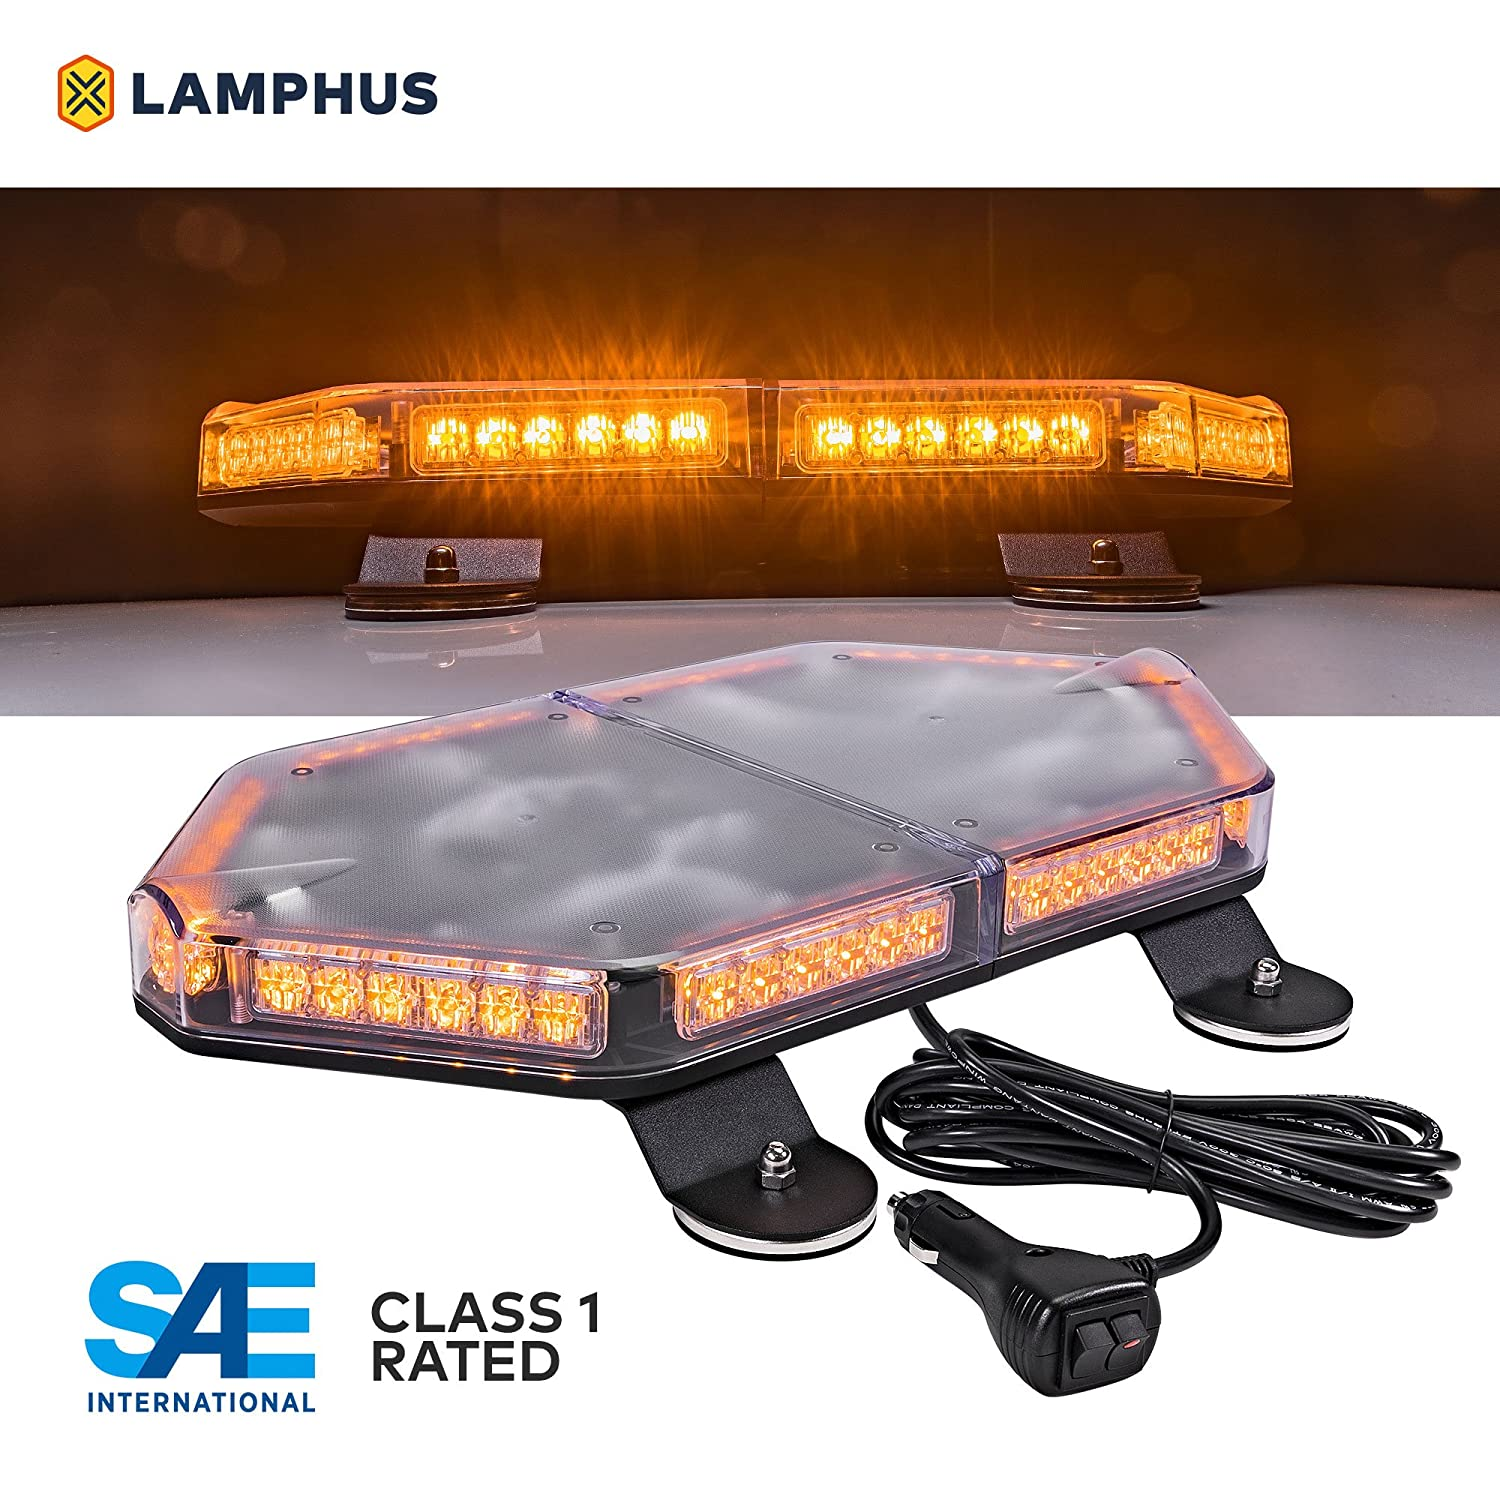 63 Flash Patterns LAMPHUS NanoFlare NFMB56 17 56W LED Mini Light Bar Magnet//Permanent Mount SAE Class 1 Green 12ft Cord Emergency Strobe Hazard Warning Light